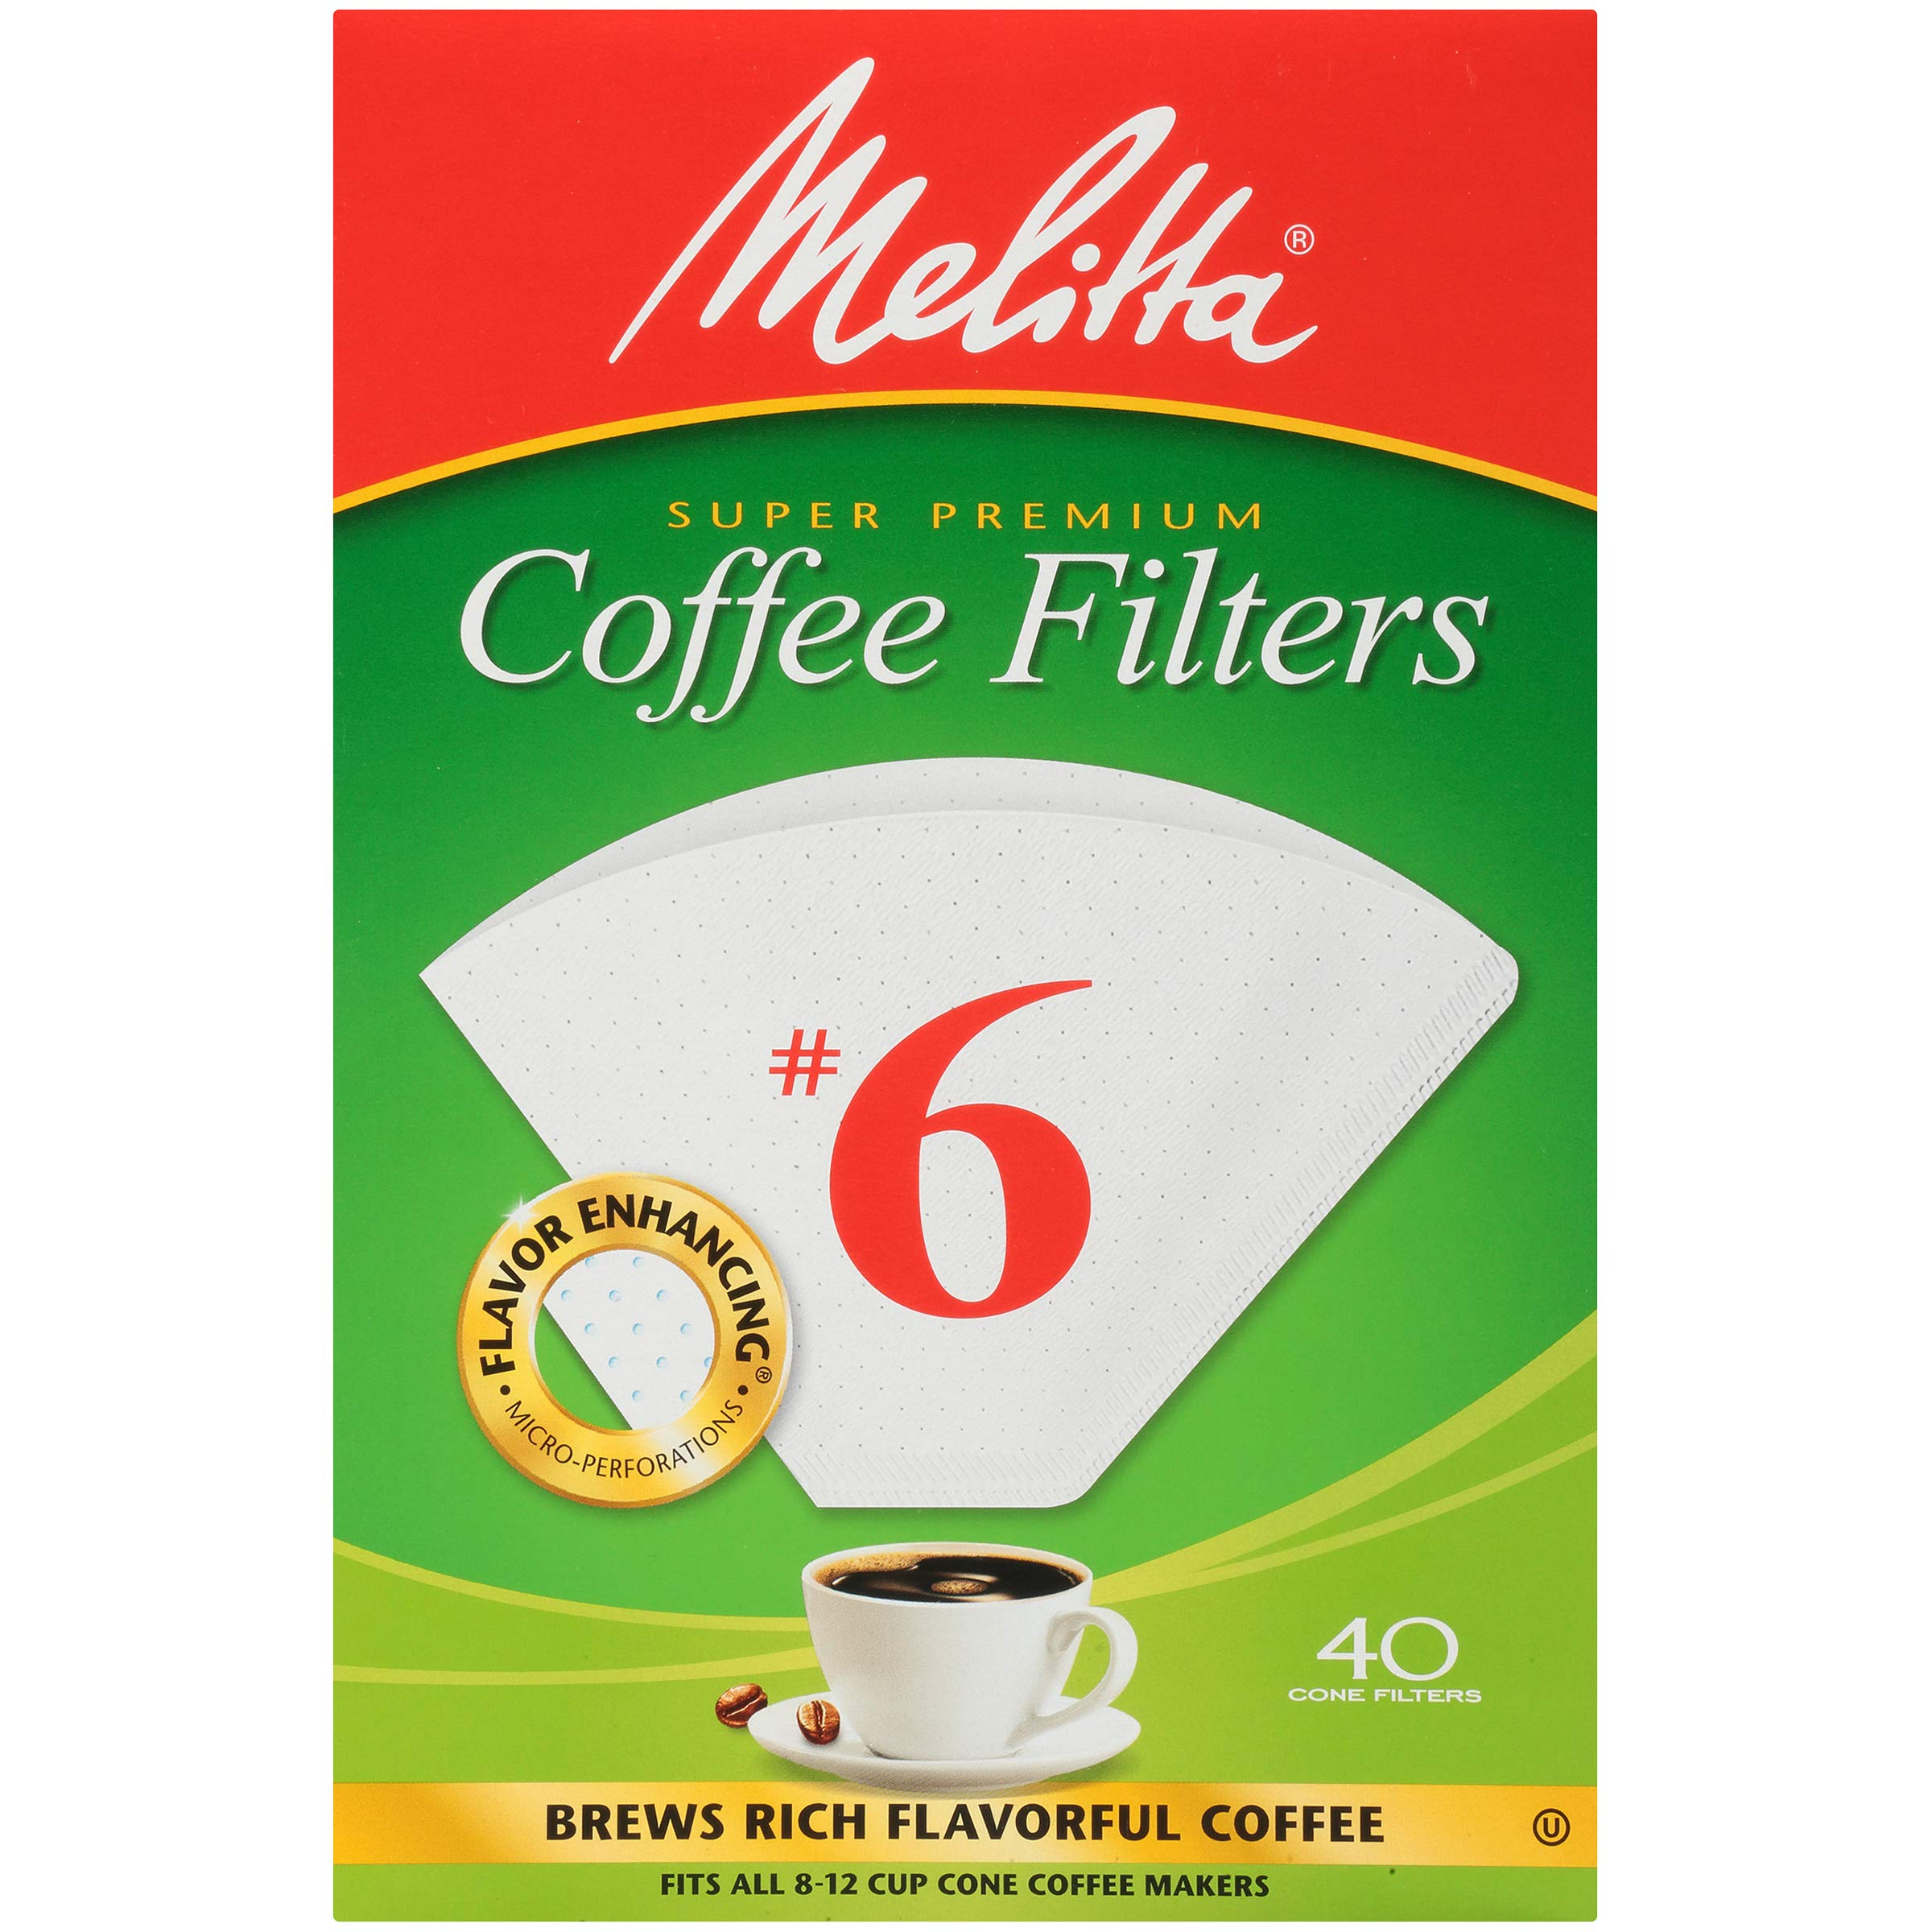 Melitta #6 Super Premium Cone Coffee Filters, White, 40 Count (Pack of 12) by Melitta